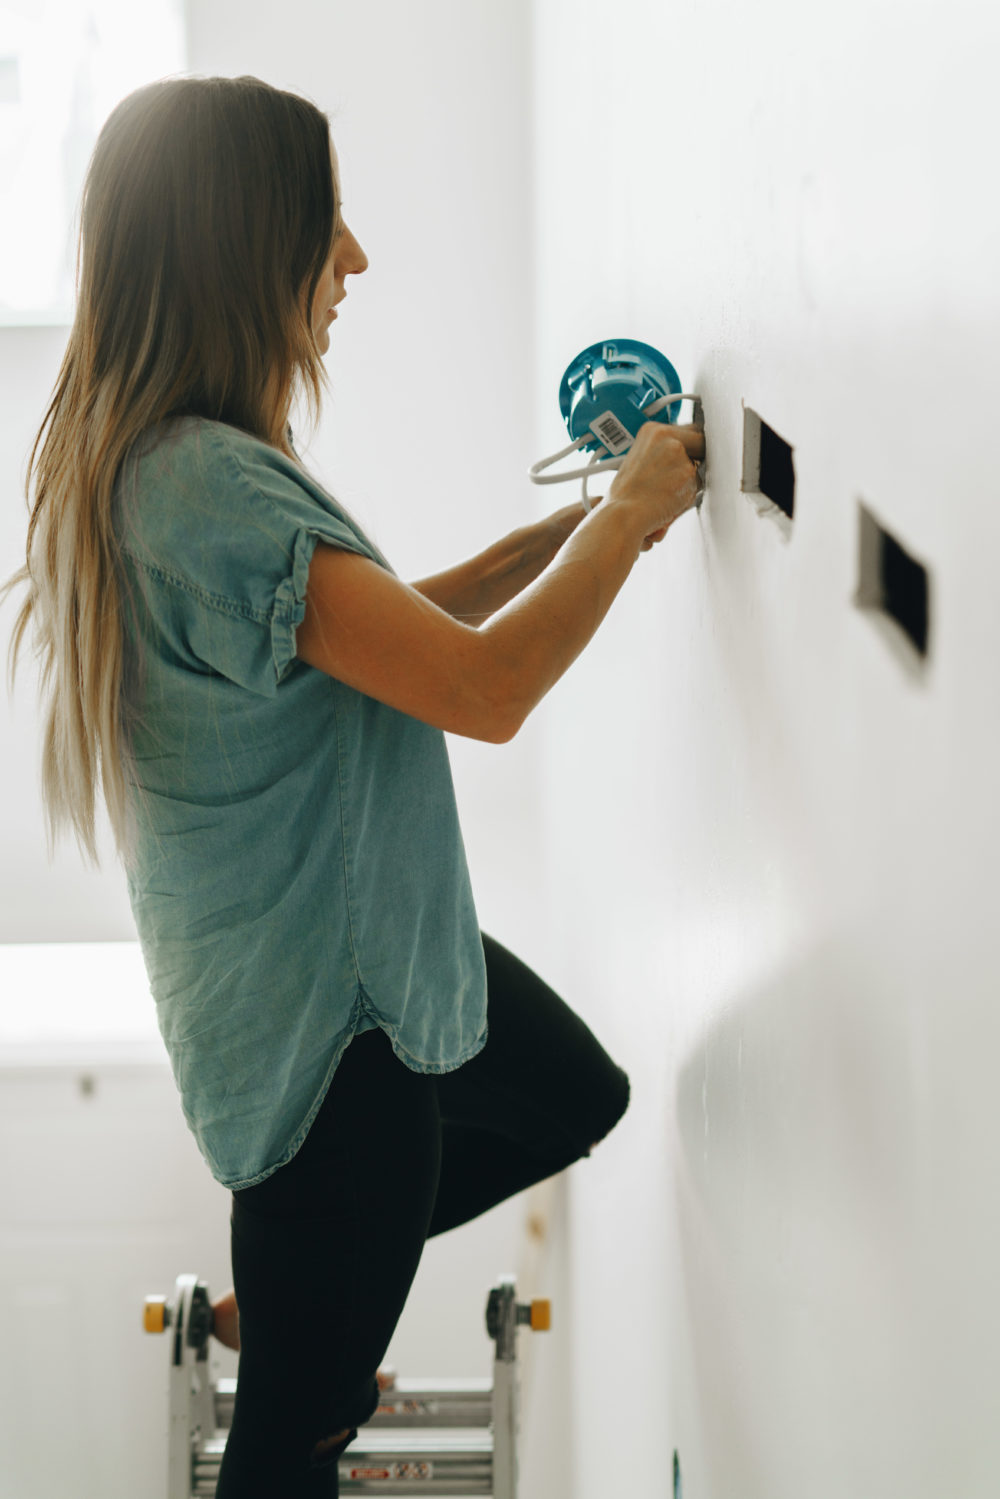 House Wiring On Wiring A Light Switch For A Ceiling Light Diy Project